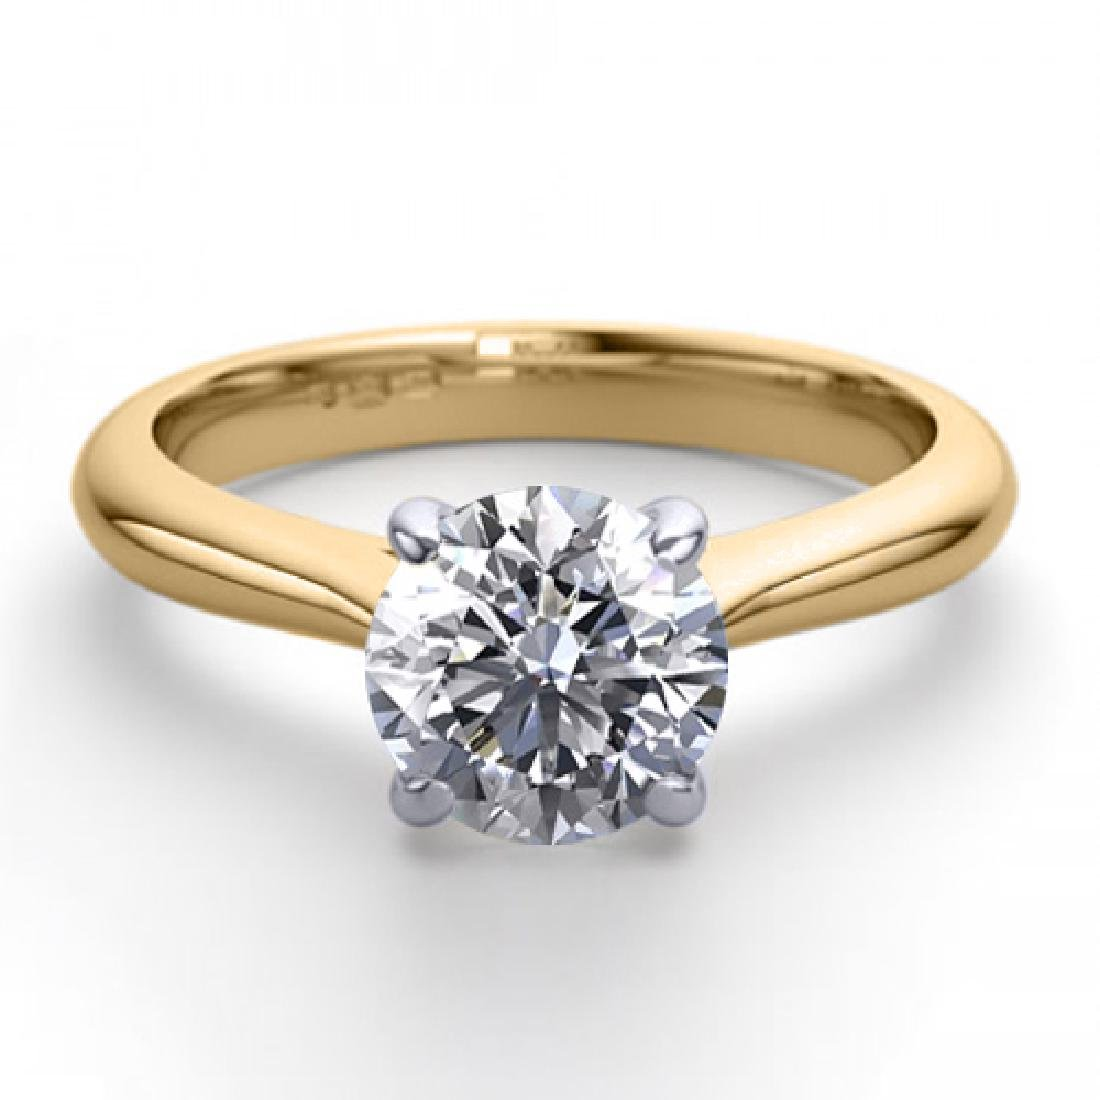 18K 2Tone Gold 0.83 ctw Natural Diamond Solitaire Ring